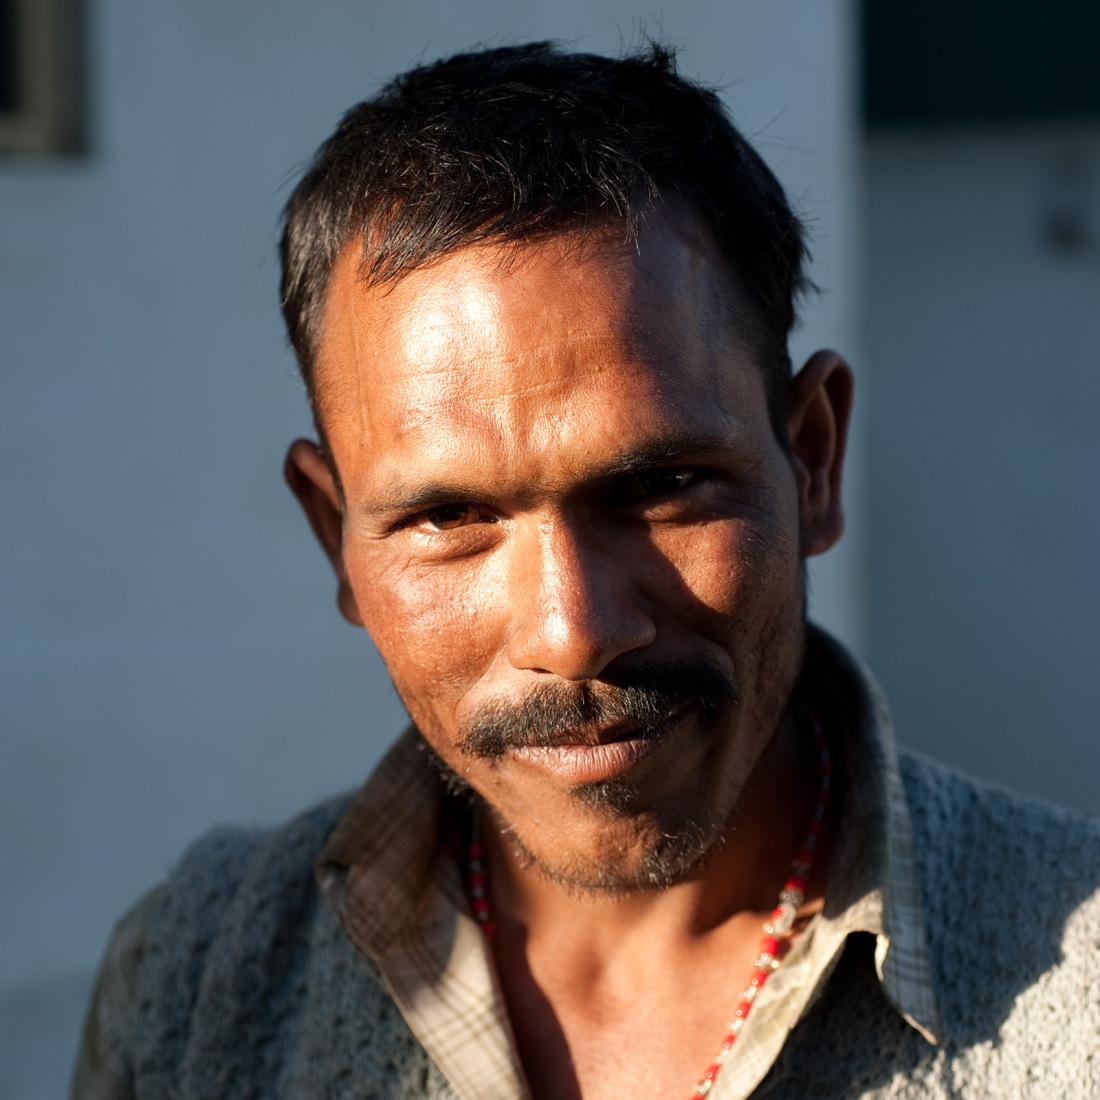 Pram, one of our porters, at Ghuttu on our last day.